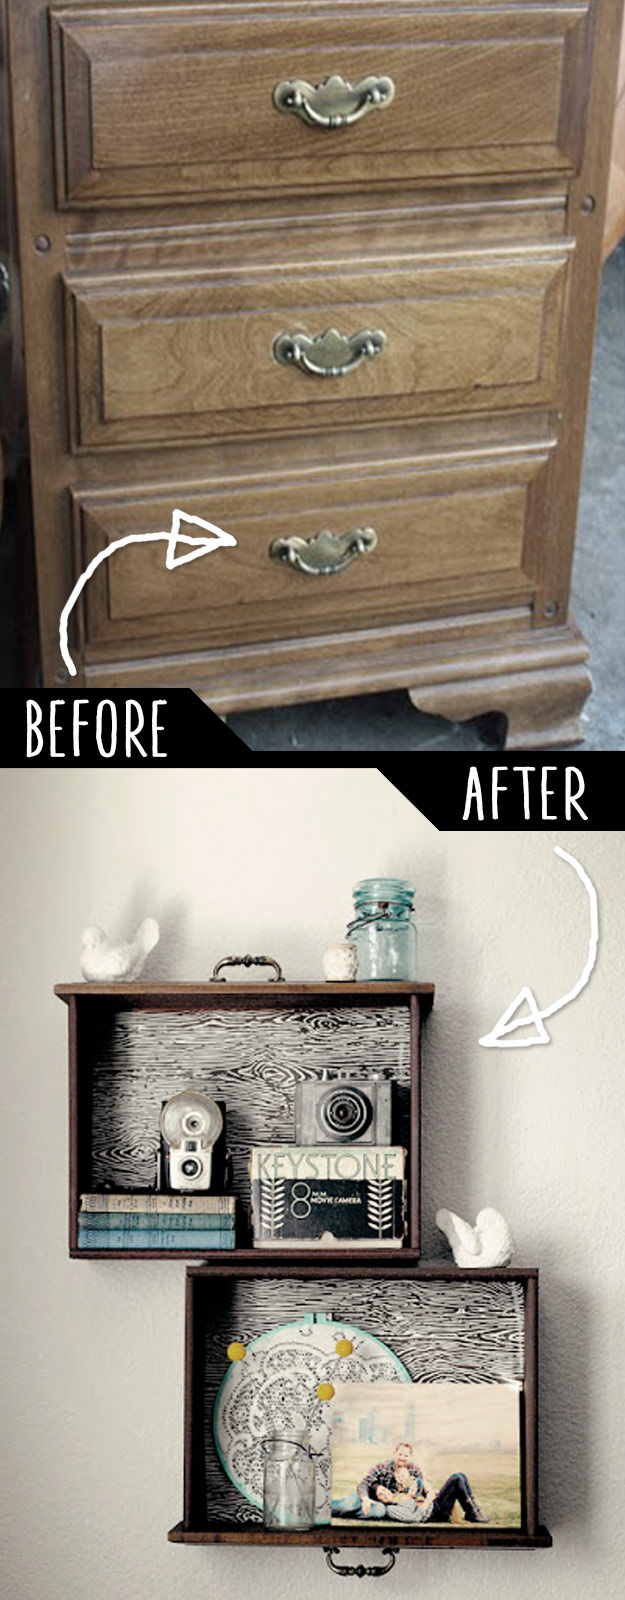 39 clever diy furniture hacks diy joy Home decor hacks pinterest